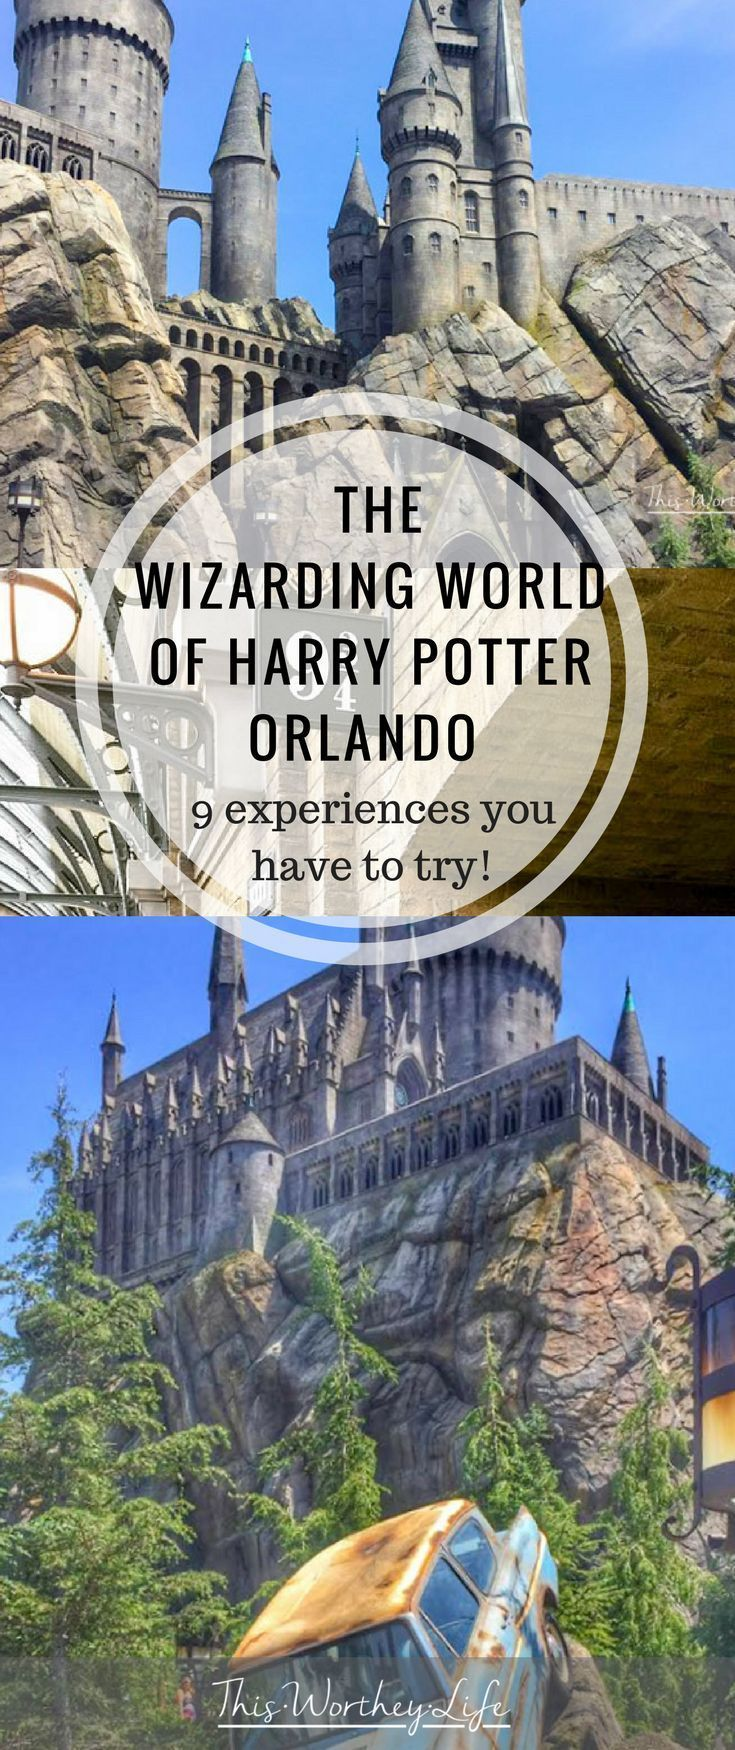 Check Out The Best Things To Do And Experience At The Wizarding World Of Harry Potter Orlando Harry Potter Orlando Harry Potter Theme Park Orlando Theme Parks